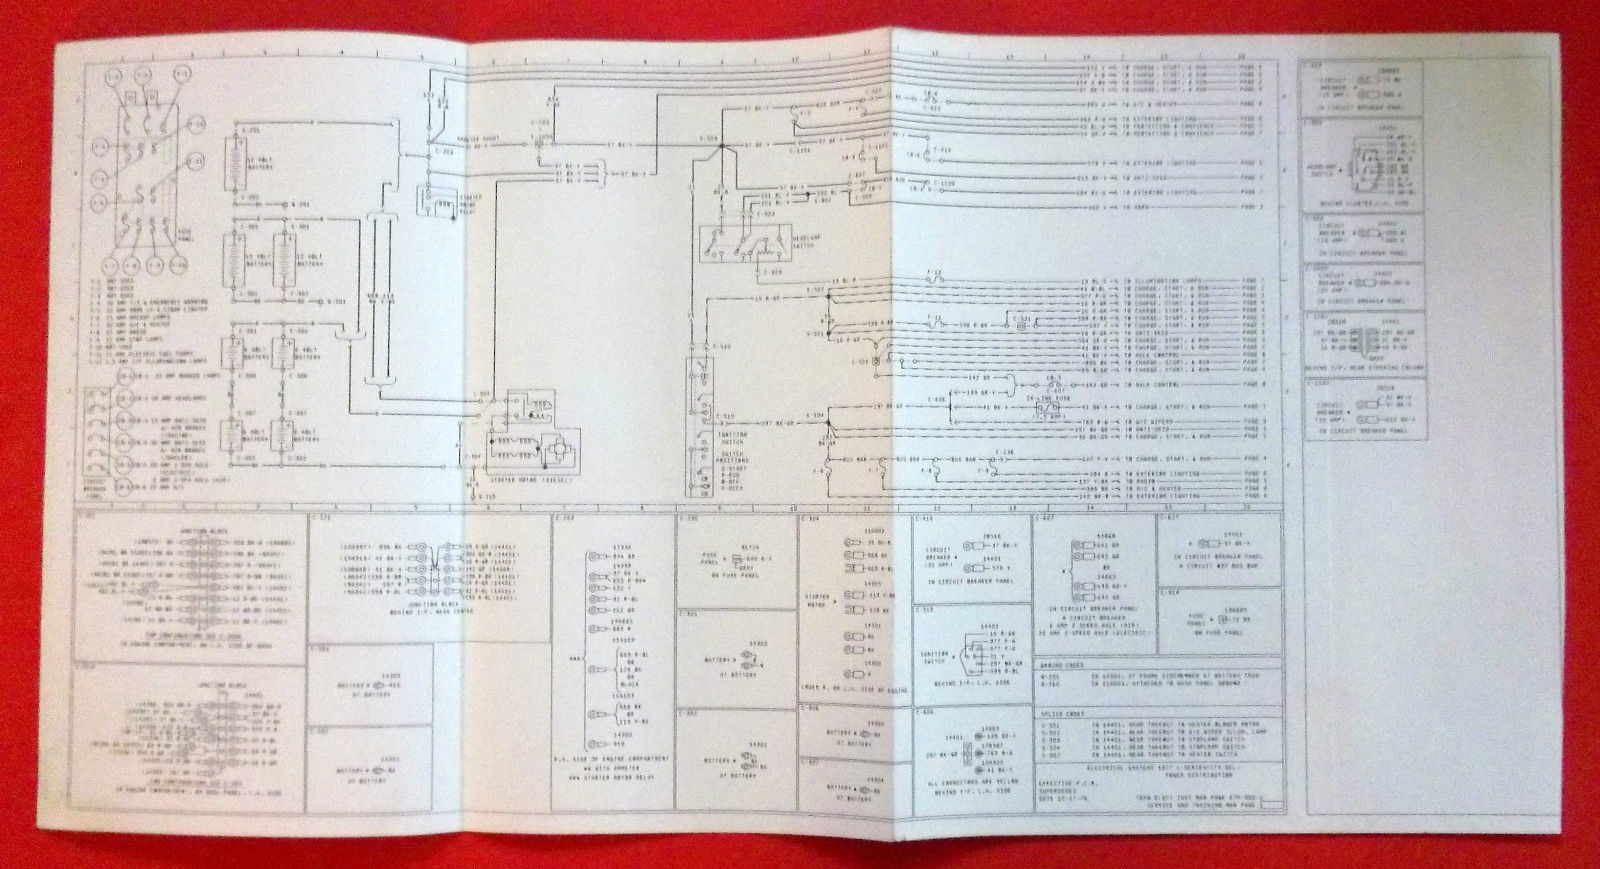 simple auto electrical wiring diagram images truck cty del electrical systems wiring diagram s oem 5 pgs trucks